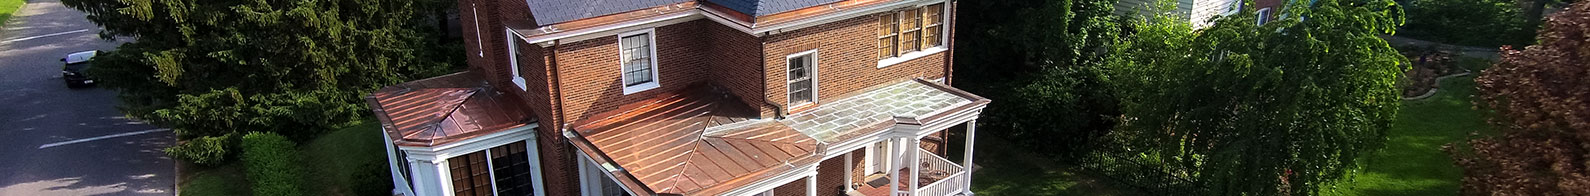 Residential Roof Types Louisville Lexington